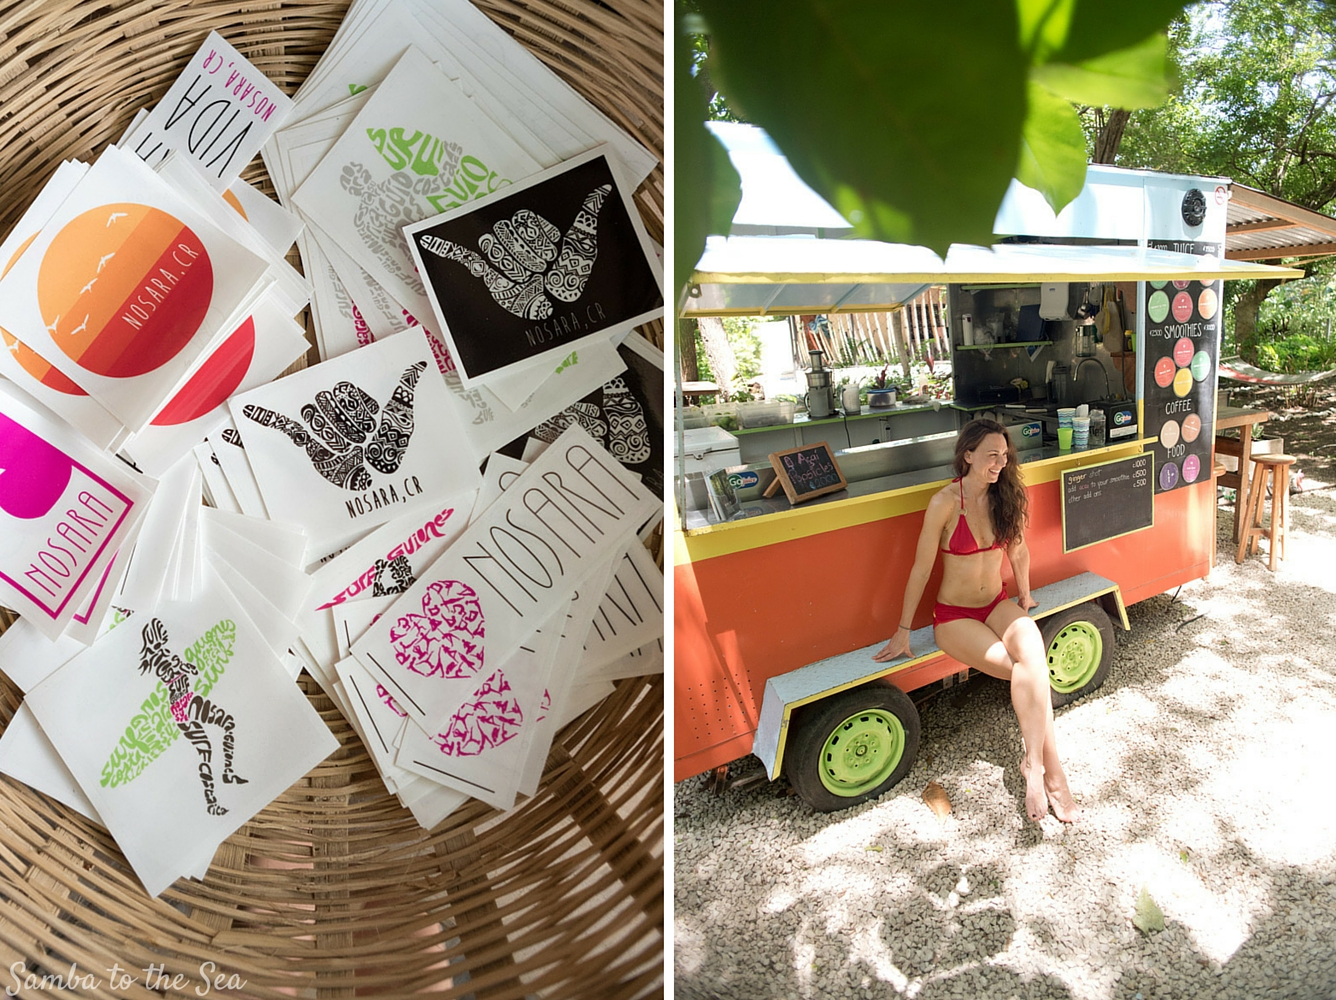 Kim at Go Juice Nosara wearing a MI OLA surf bikini. Photographed by Kristen M. Brown, Samba to the Sea Photography.